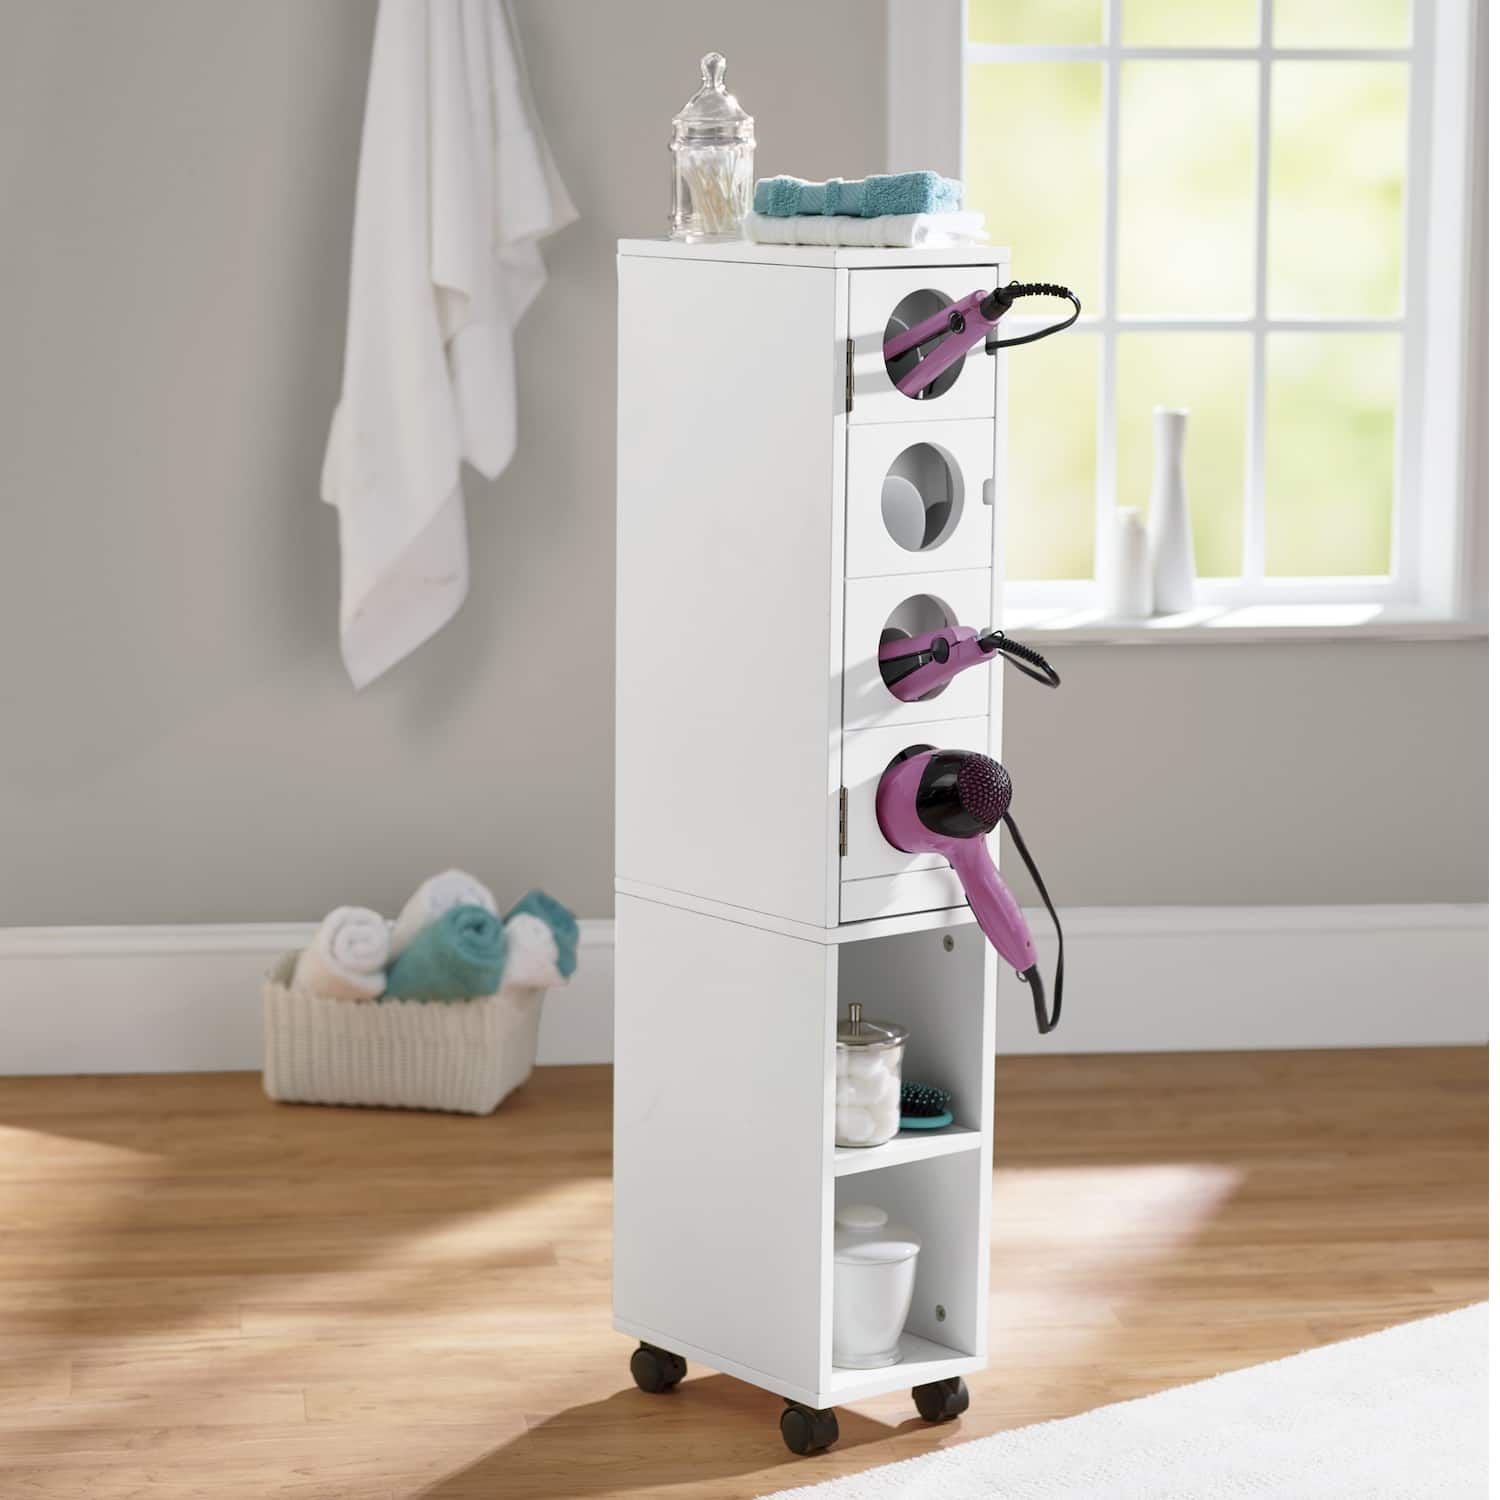 Powered Bathroom Rolling Cart | Montgomery Ward | Rolling ...